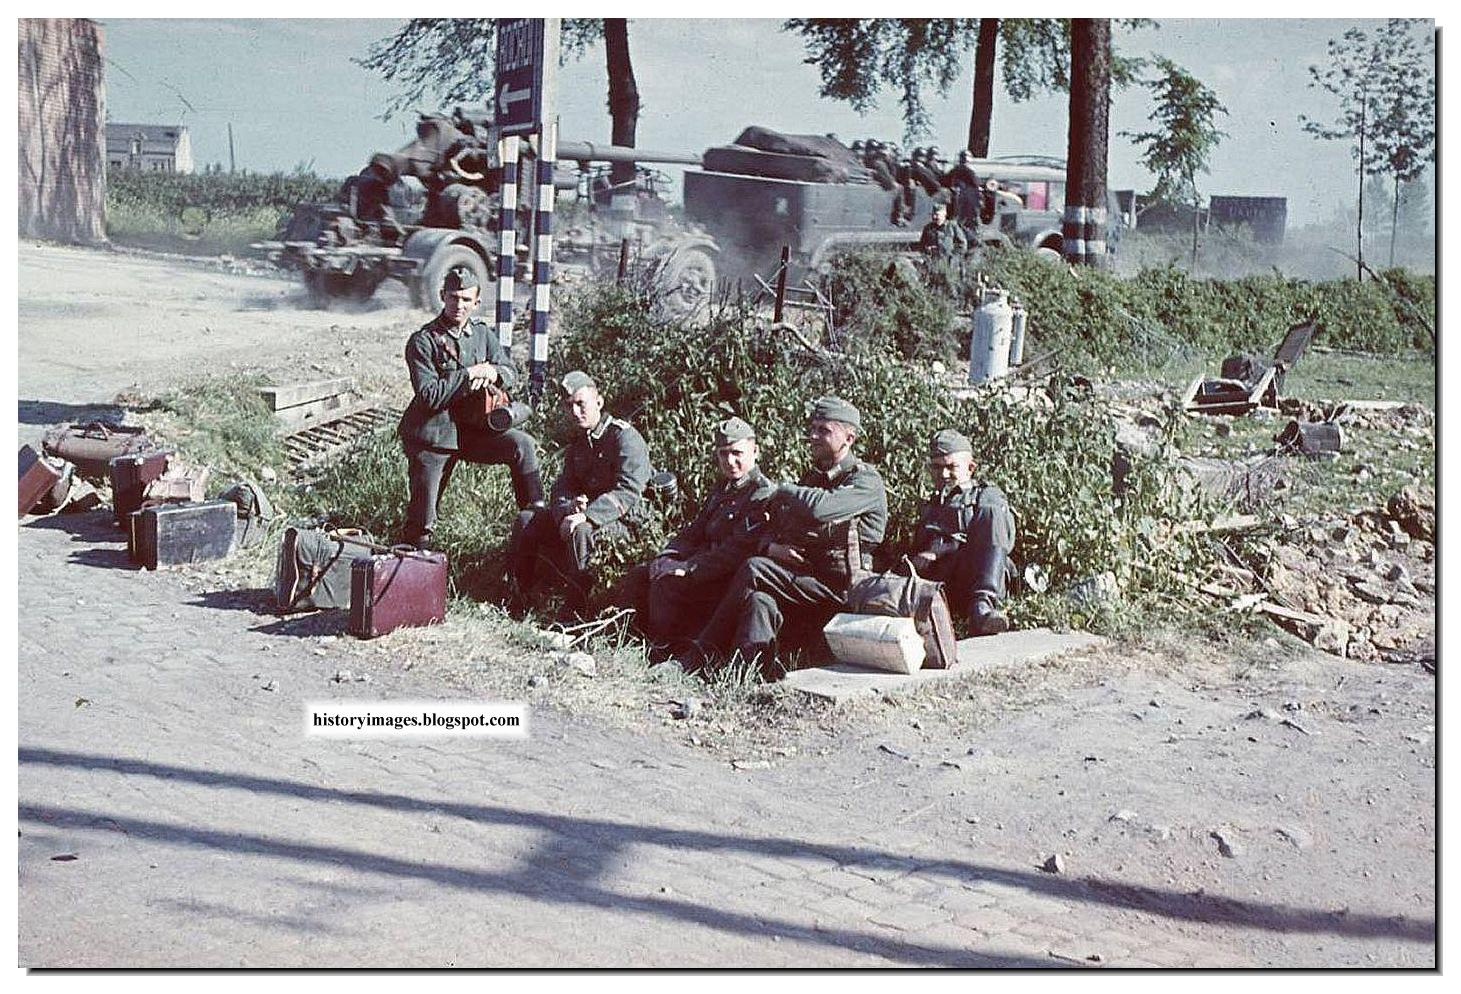 german-army-soldiers-ww2-all-color-clour-images-pictures-photos-rest-roadside.jpg